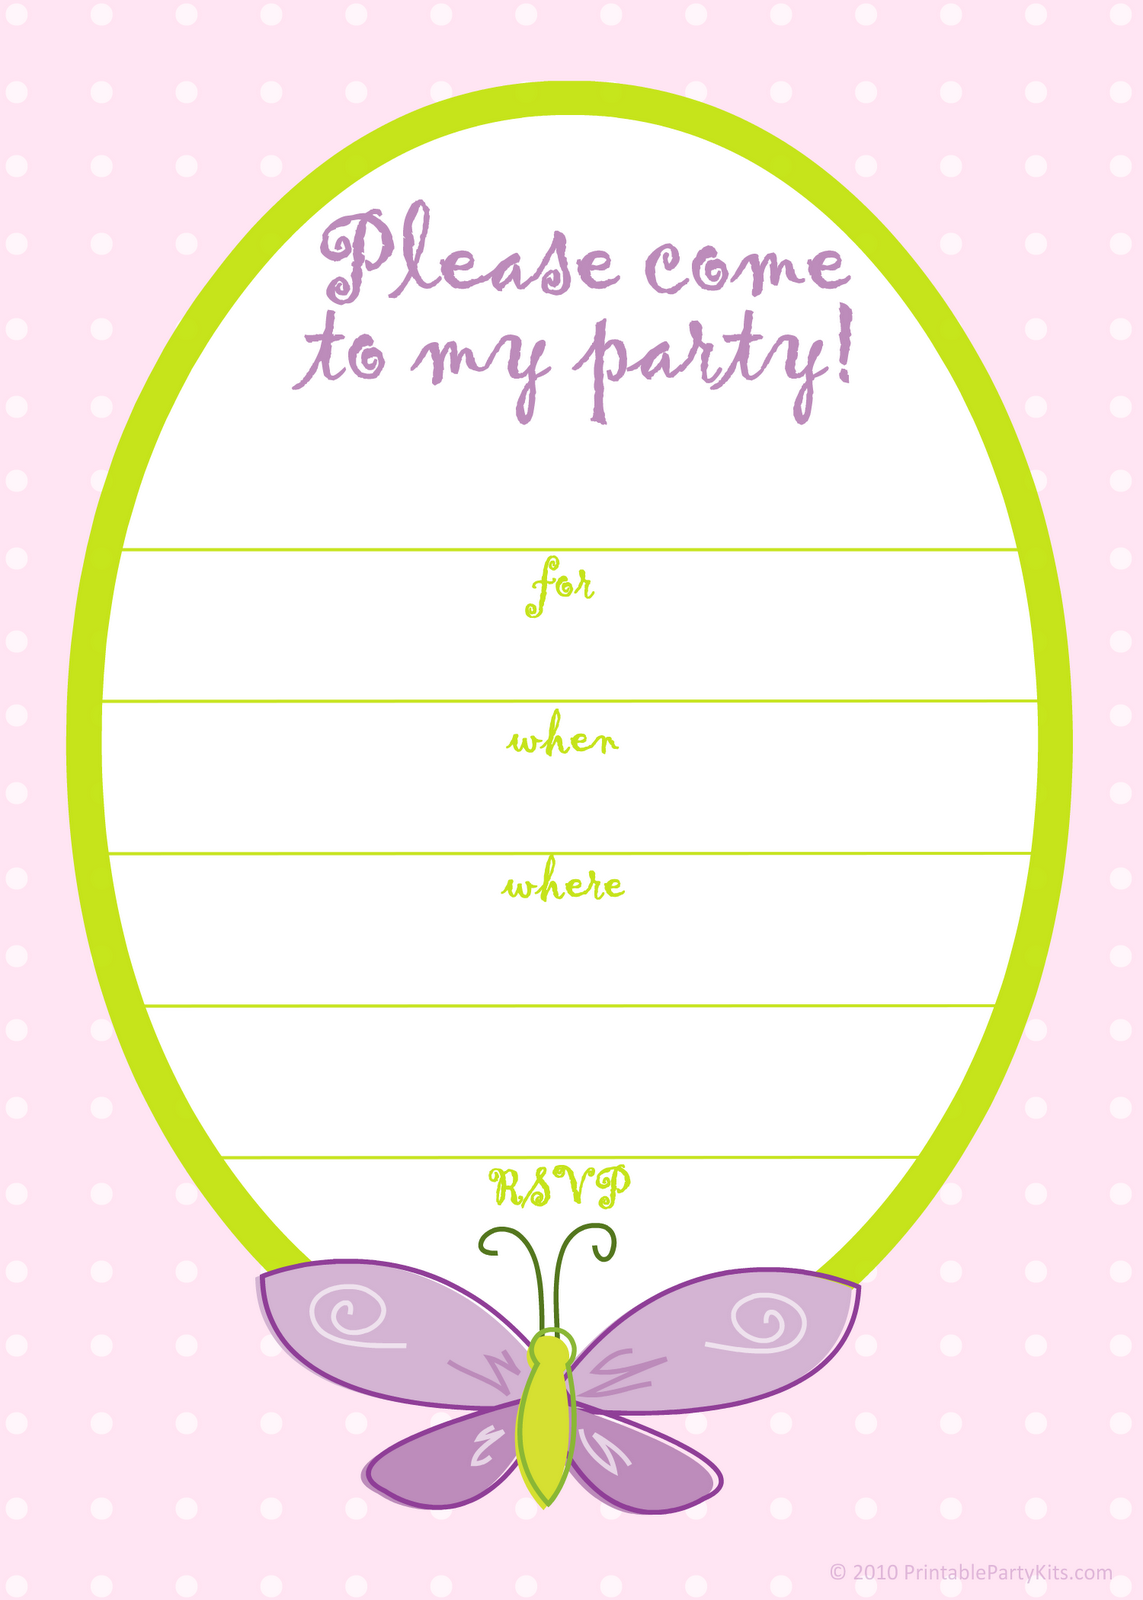 Bday Invitations Templates best word free printable birthday – Free 18th Birthday Invitation Templates